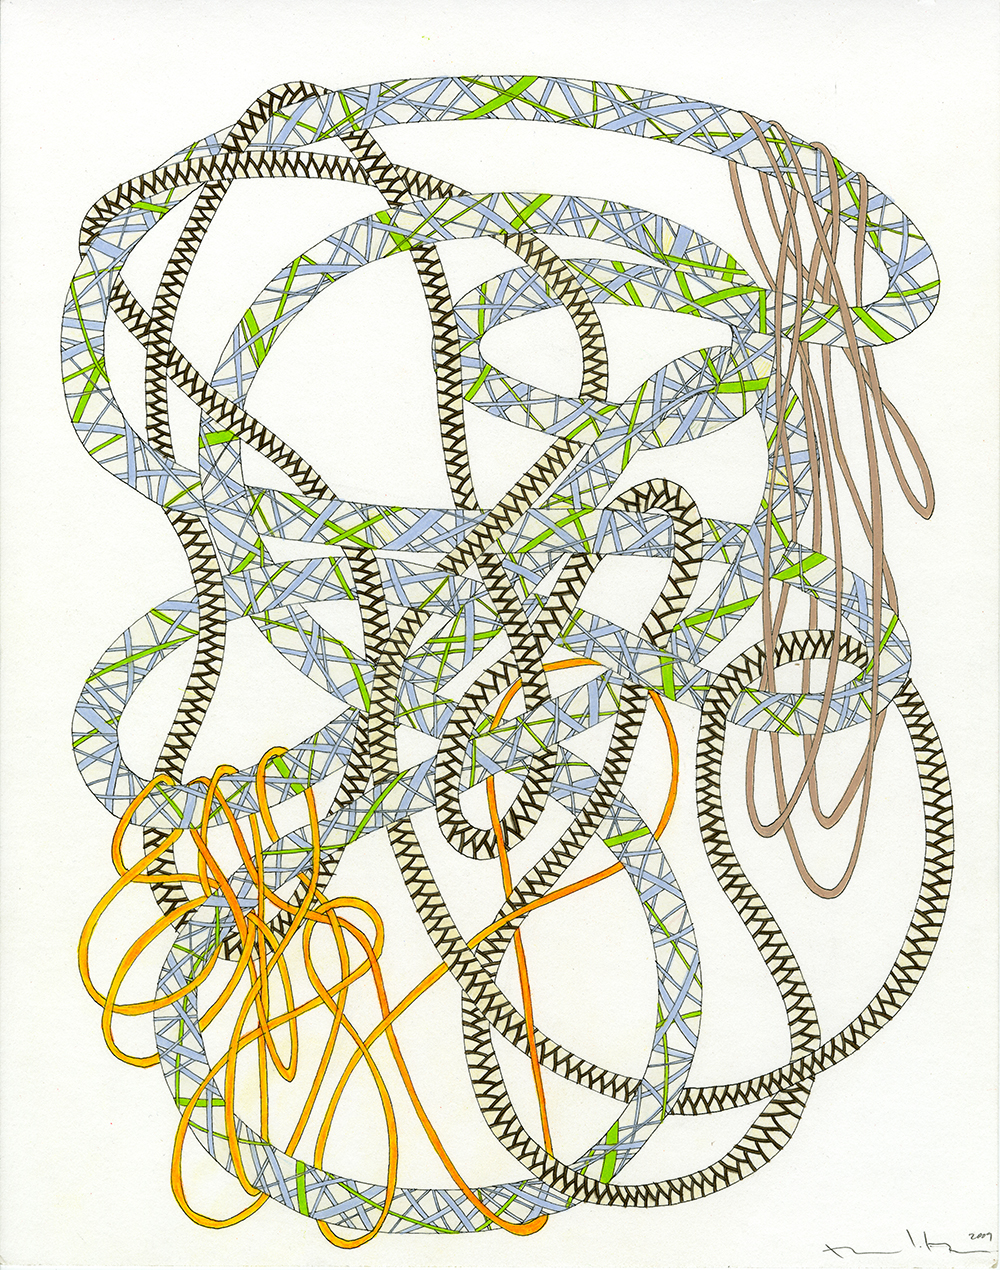 Ropes in Blue, Green, Tan, & Orange_11x14_2009_CC.jpg